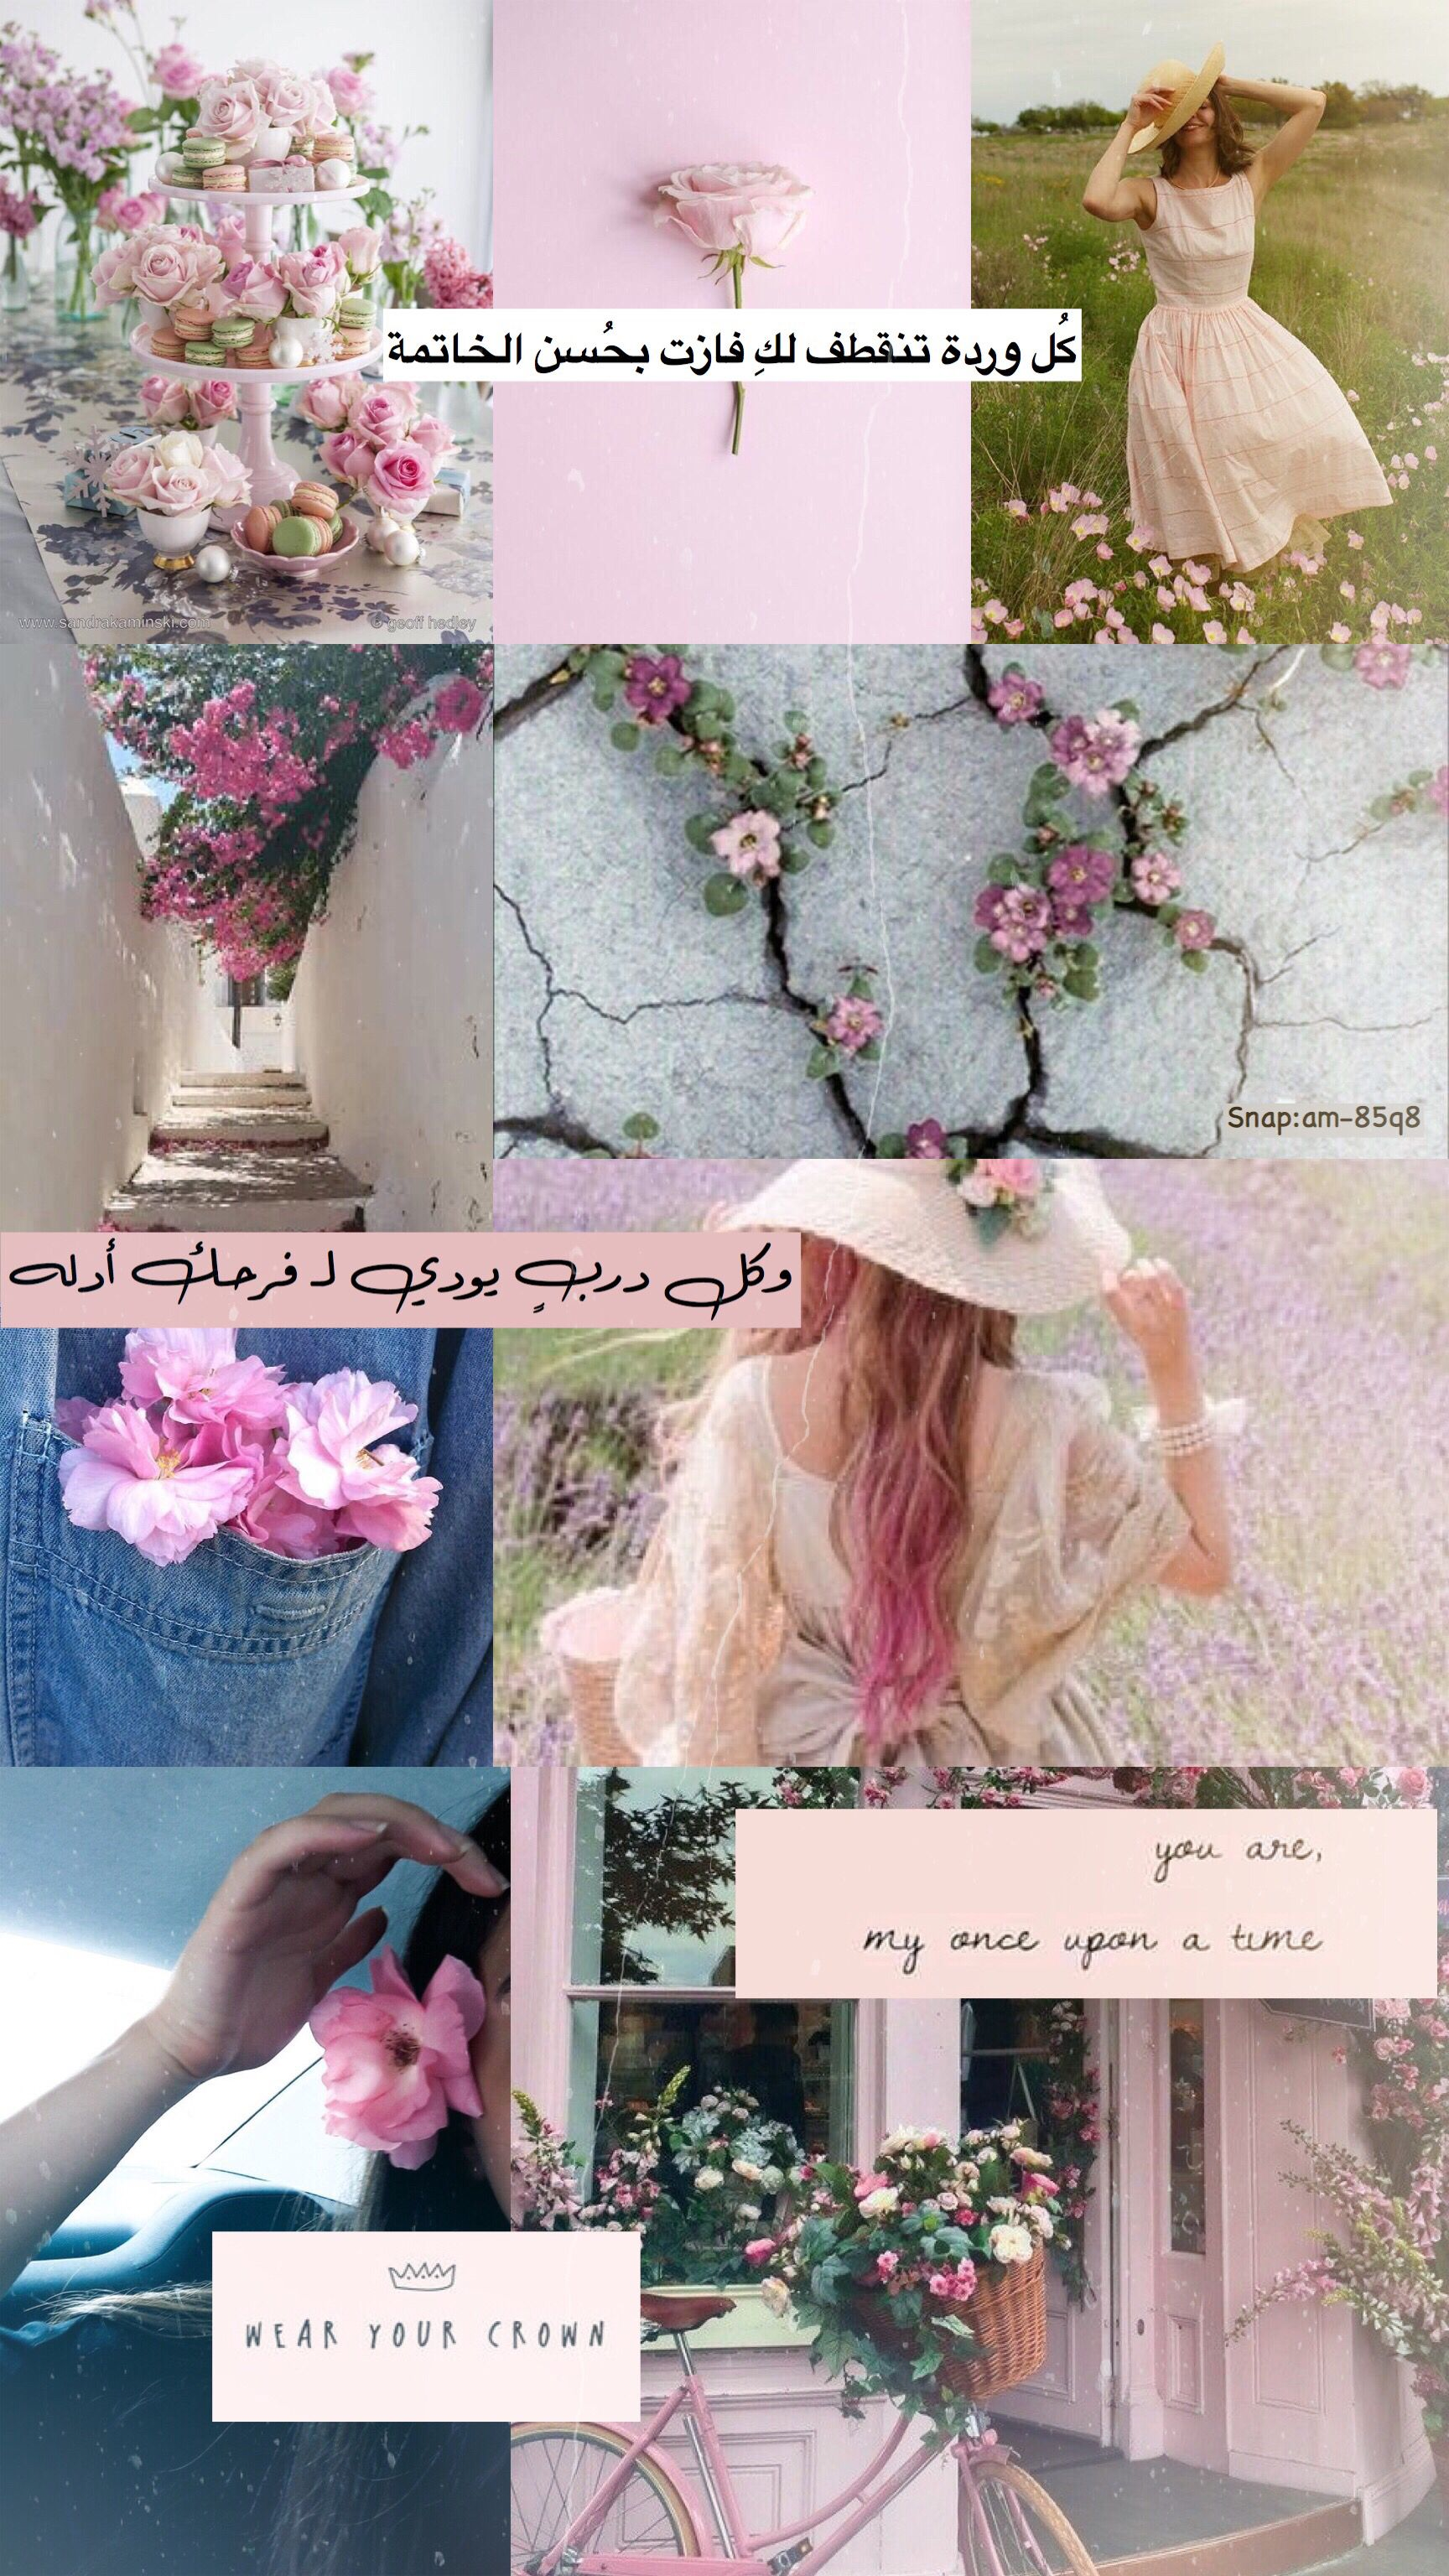 خلفيات سنابات كل هالدنيا أماني Iphone Wallpaper Quotes Love Love Quotes Wallpaper Arabic Quotes